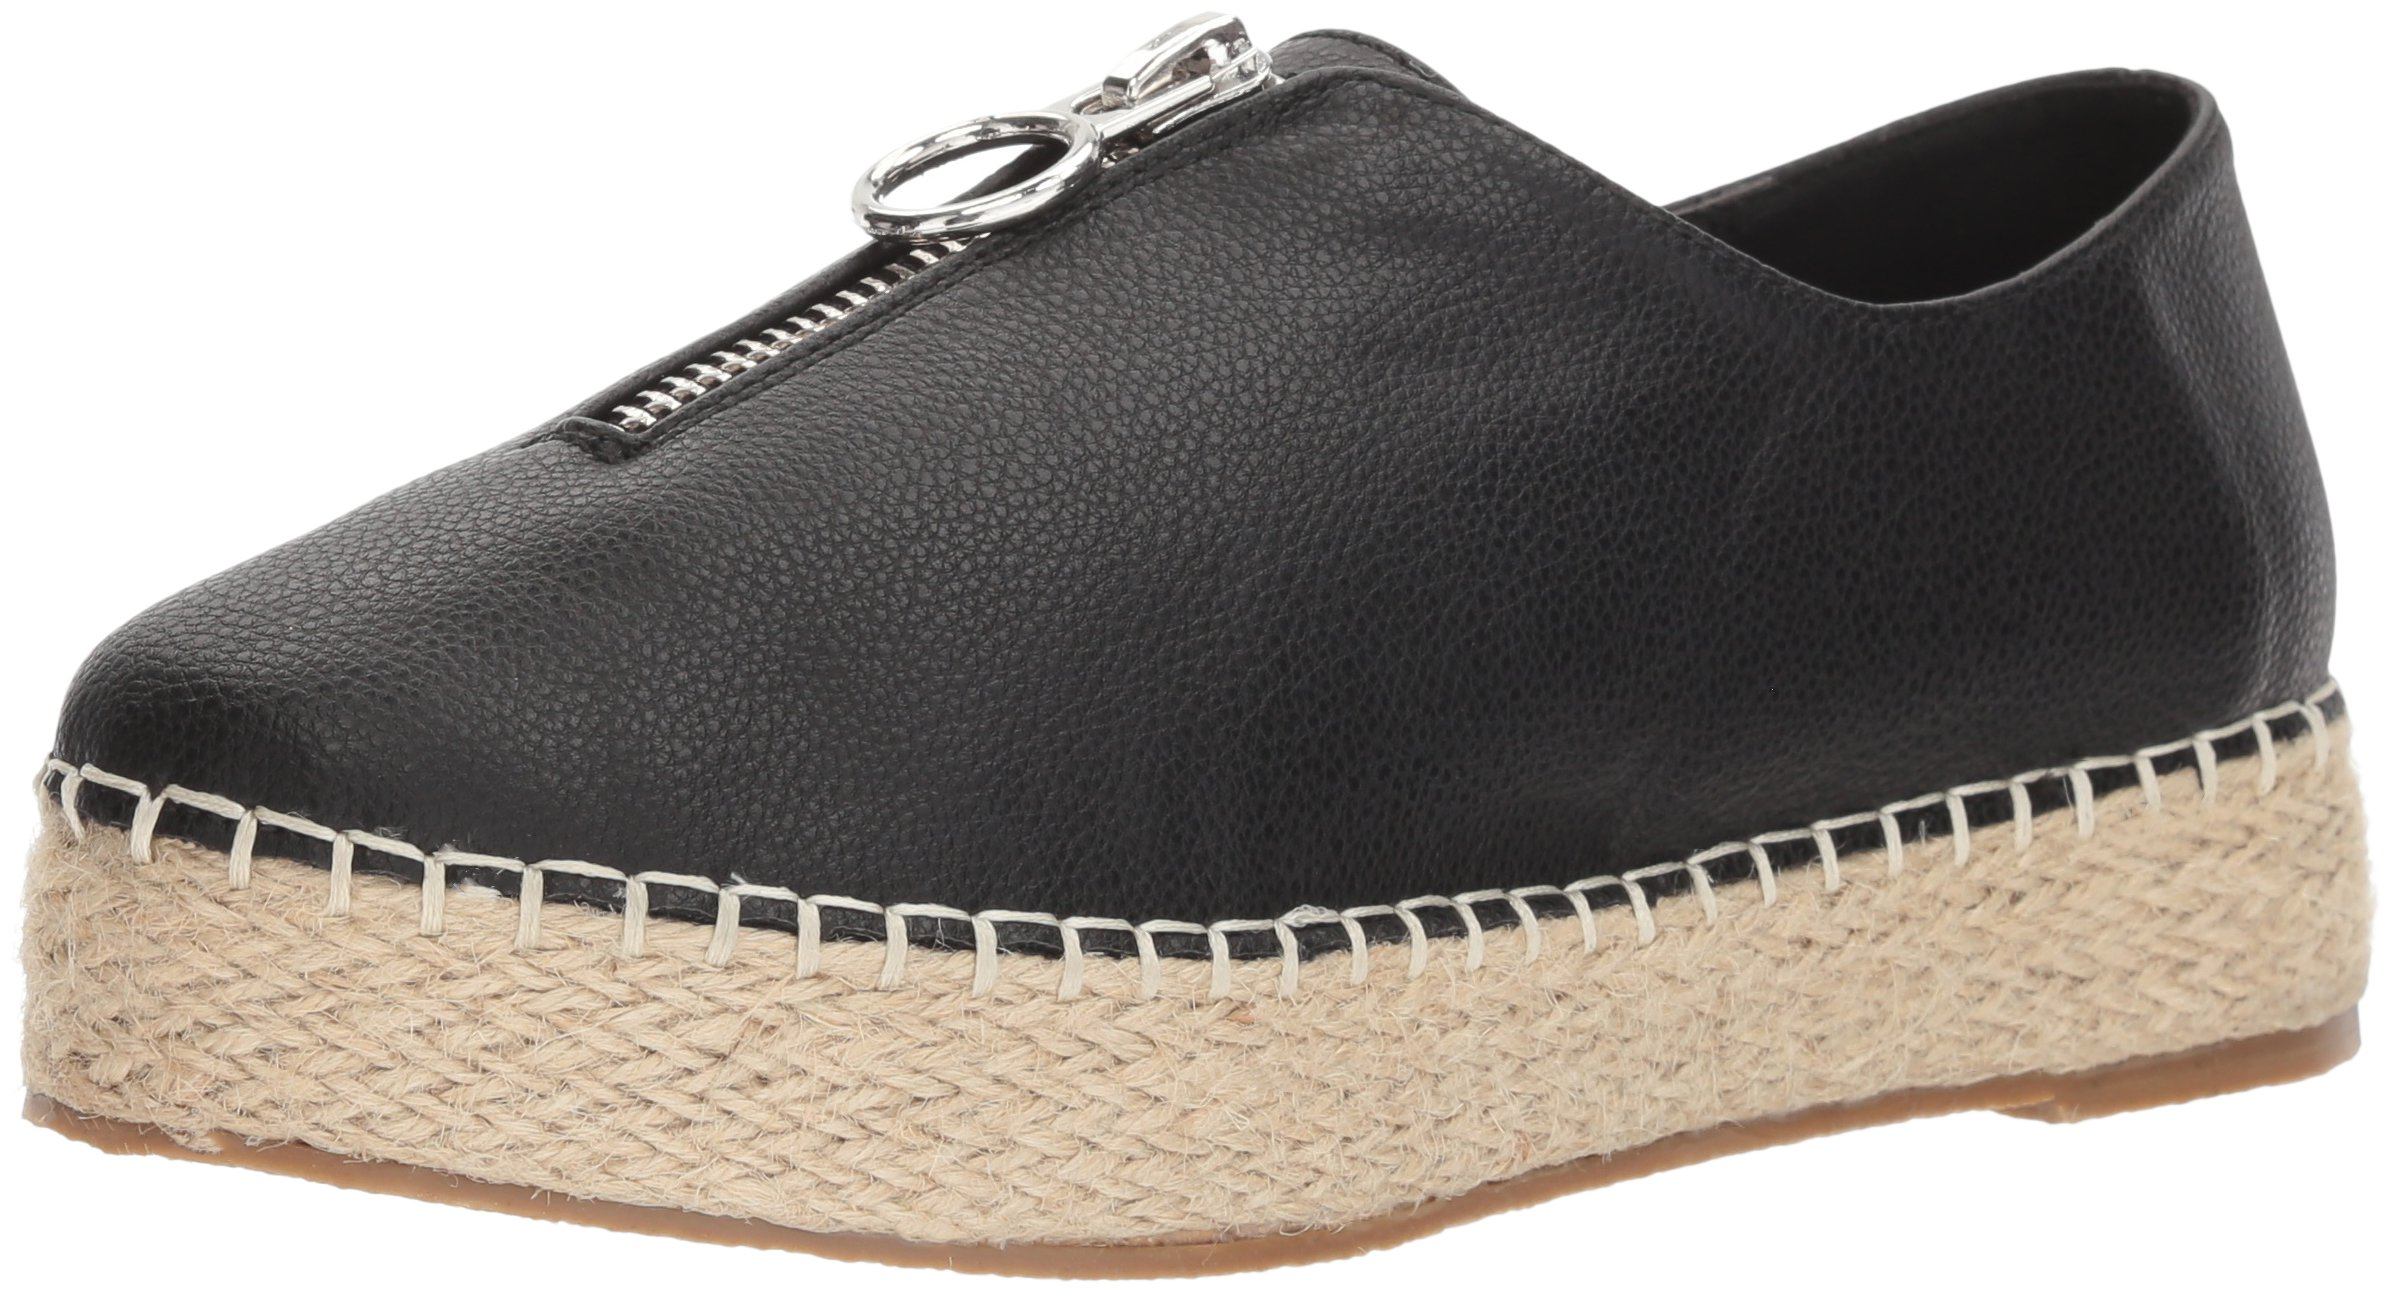 Coconuts by Matisse Women's Mighty Fine Platform, Black, 9 M US